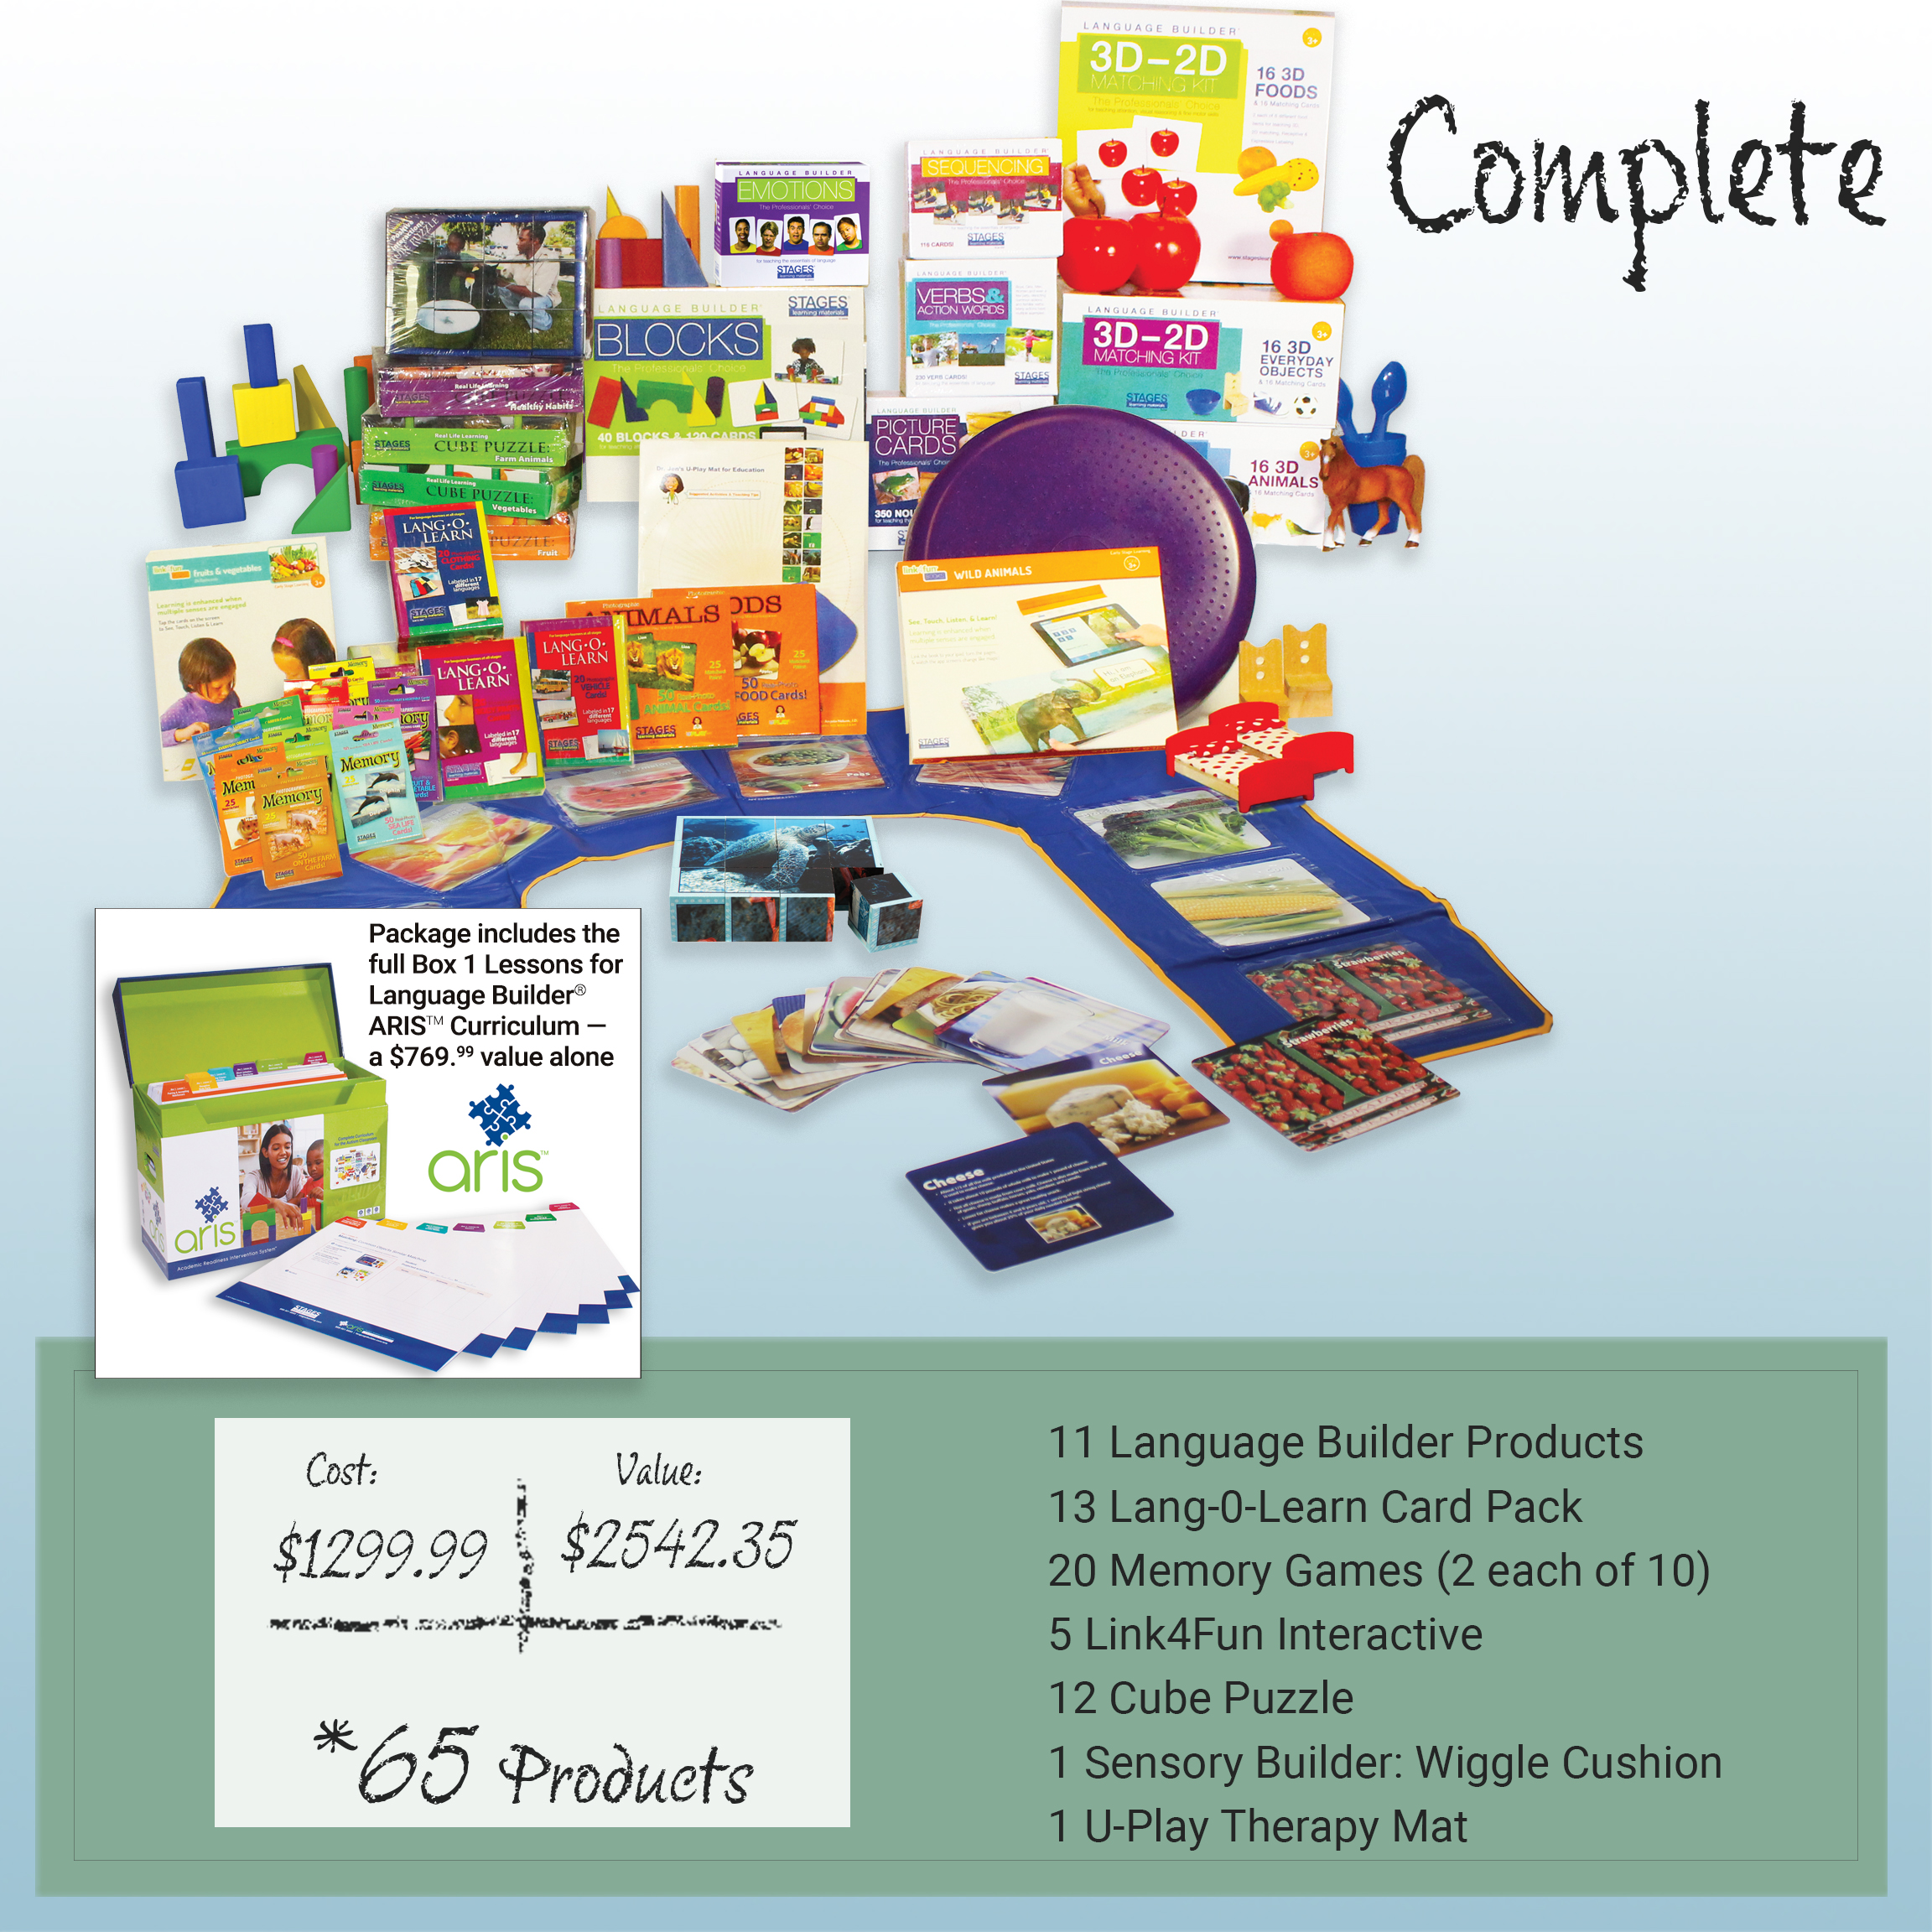 Collage of Stages Products with text Value is $2542.35. Cost is $1299.99. Includes 67 products